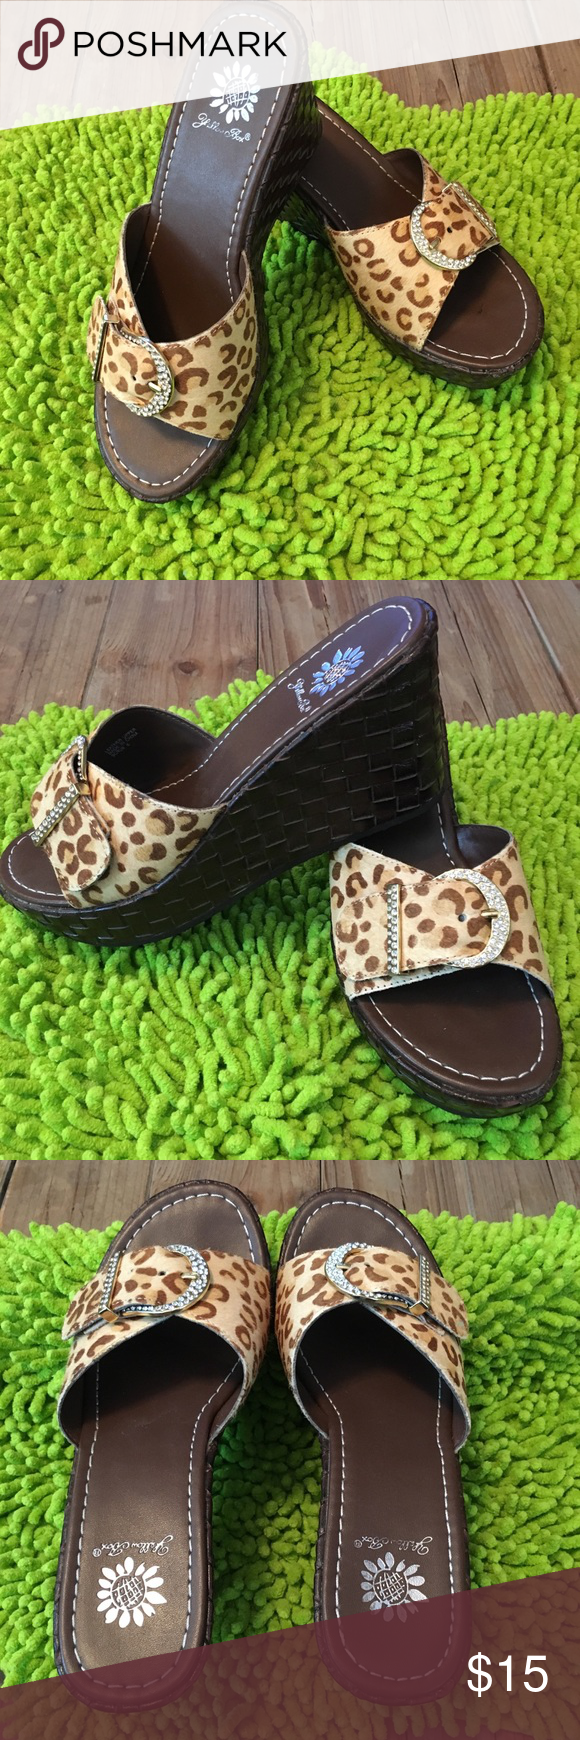 Cheetah Print Wedge Sandals With Bling Cheetah Print Wedge Sandals. Size 6. Yellow Box faux cheetah print sandals with bling buckles. Excellent used condition. YB600 Yellow Box Shoes Wedges